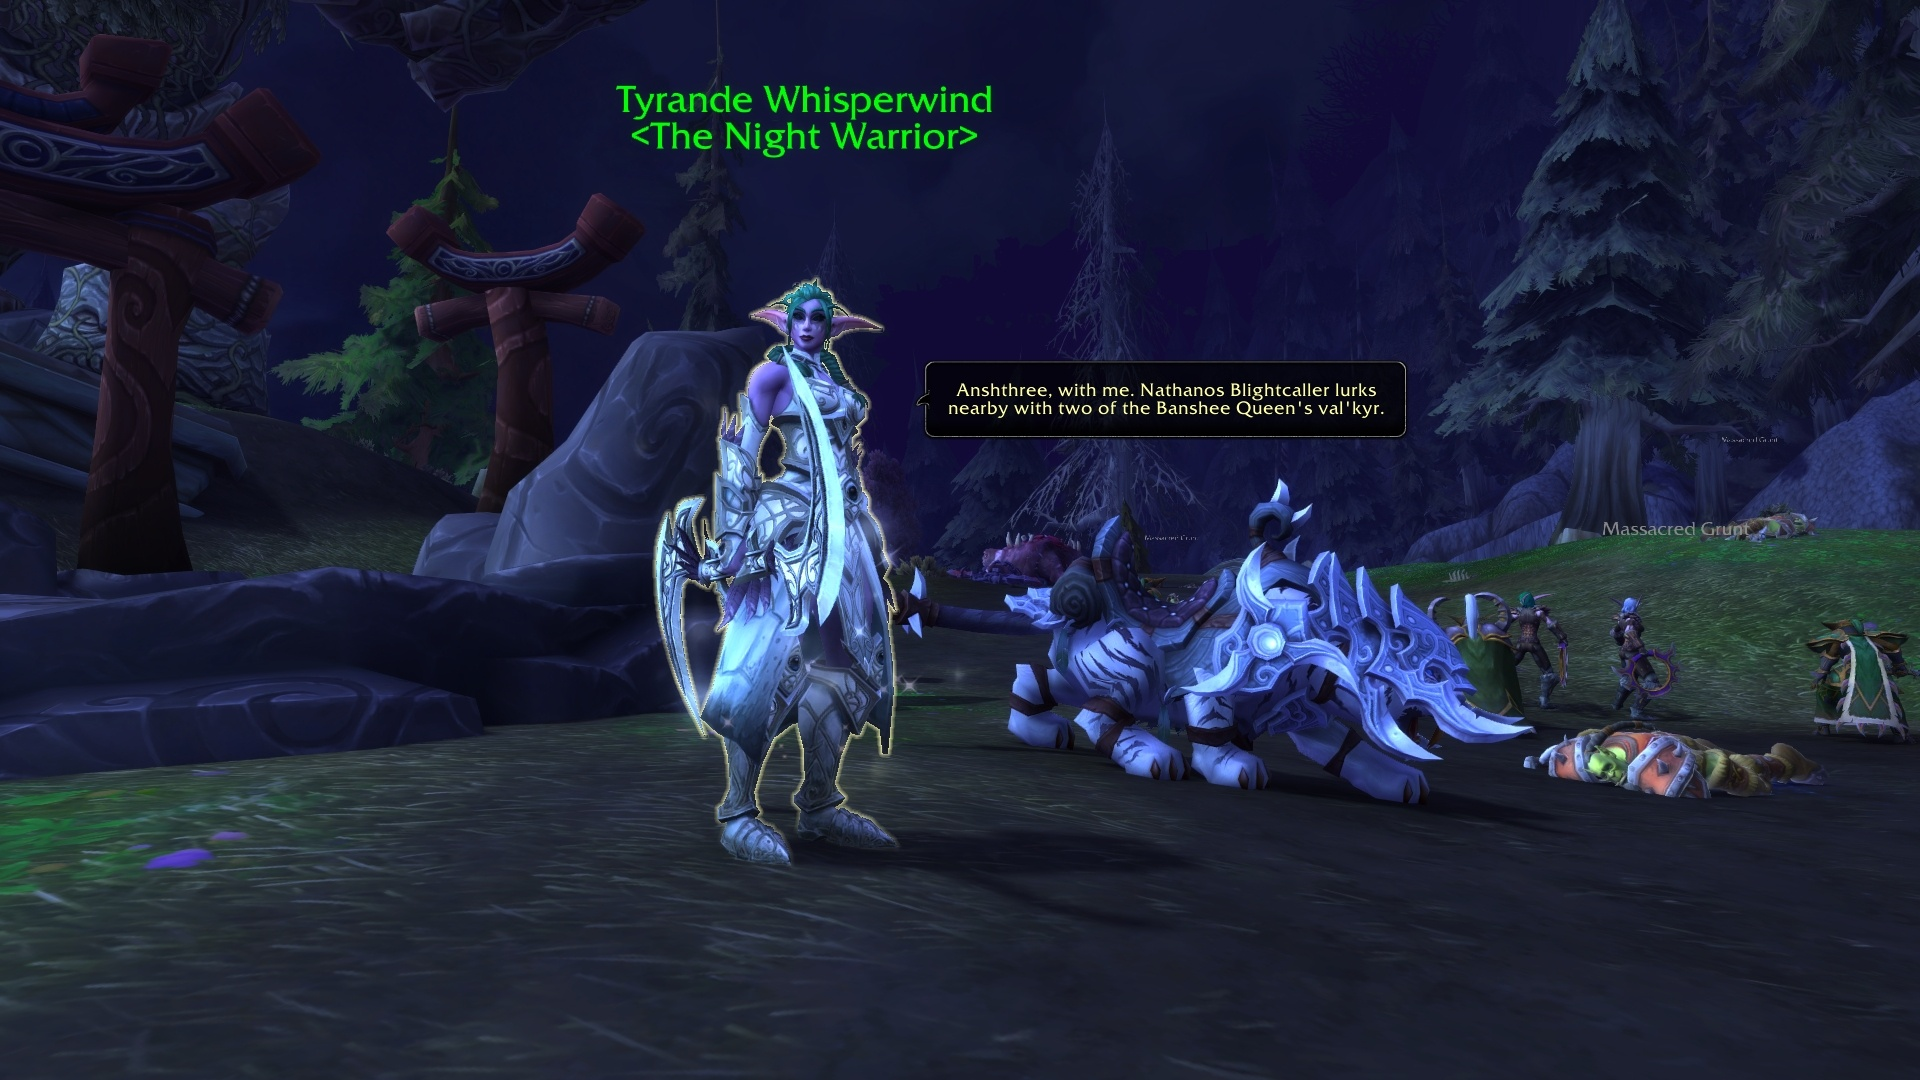 WoW Tyrande Night Warrior Quest Darkshore